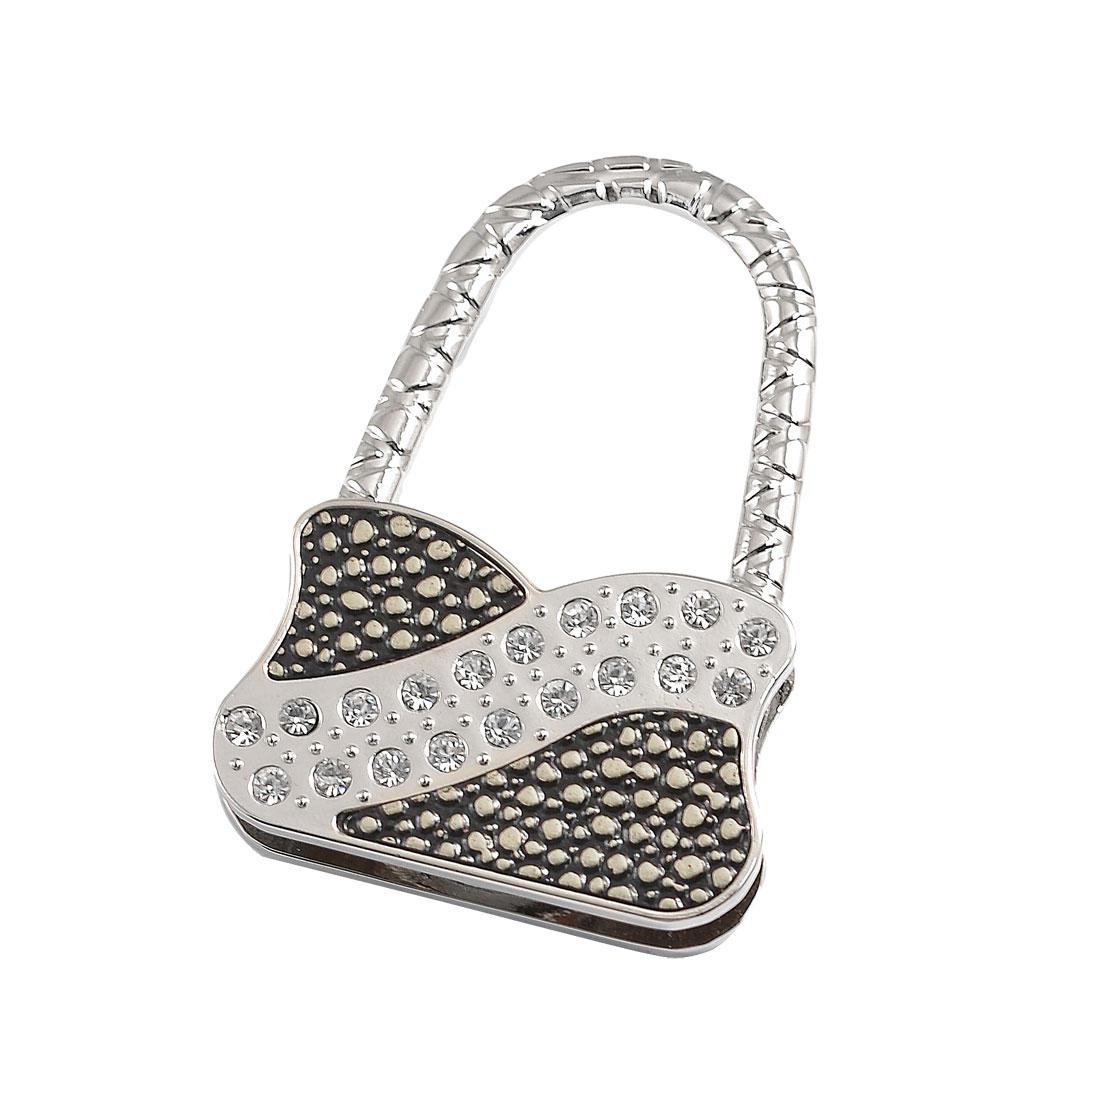 Handbag Shape Metal Rhinestone Decor Foldable Bag Hook Hanger